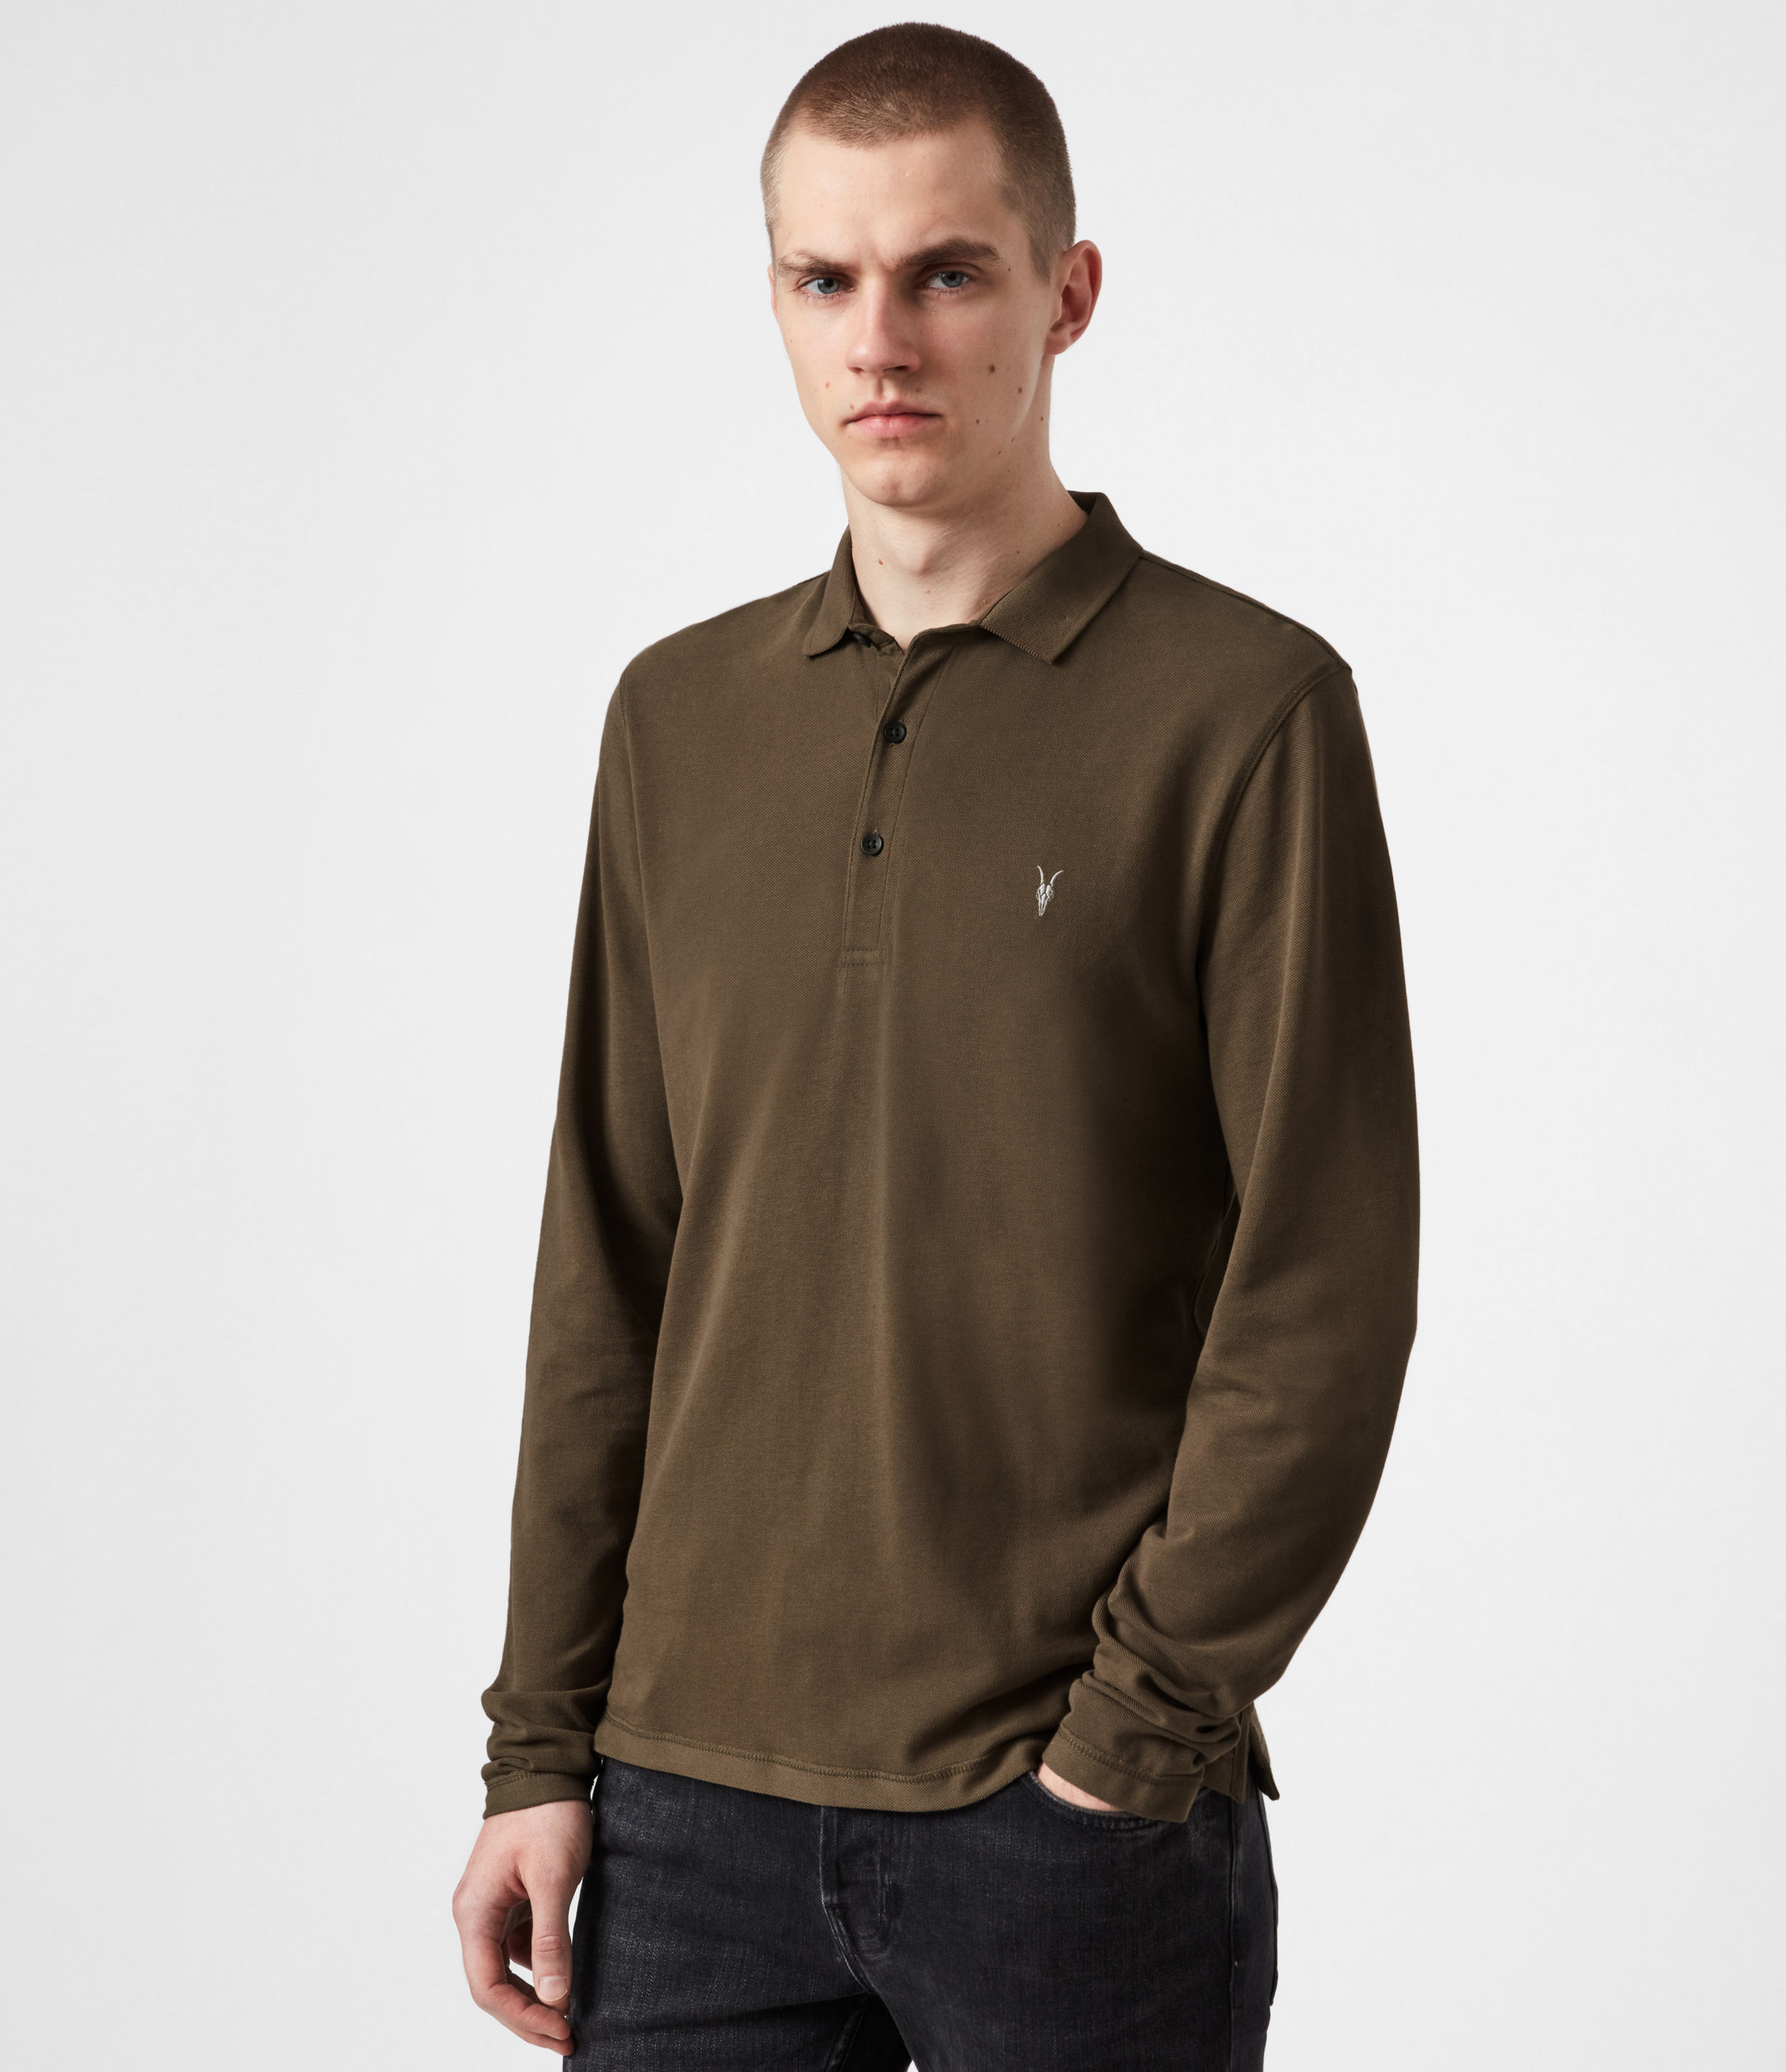 AllSaints Mens Reform Long Sleeve Polo Shirt, Totem Brown, Size: XL